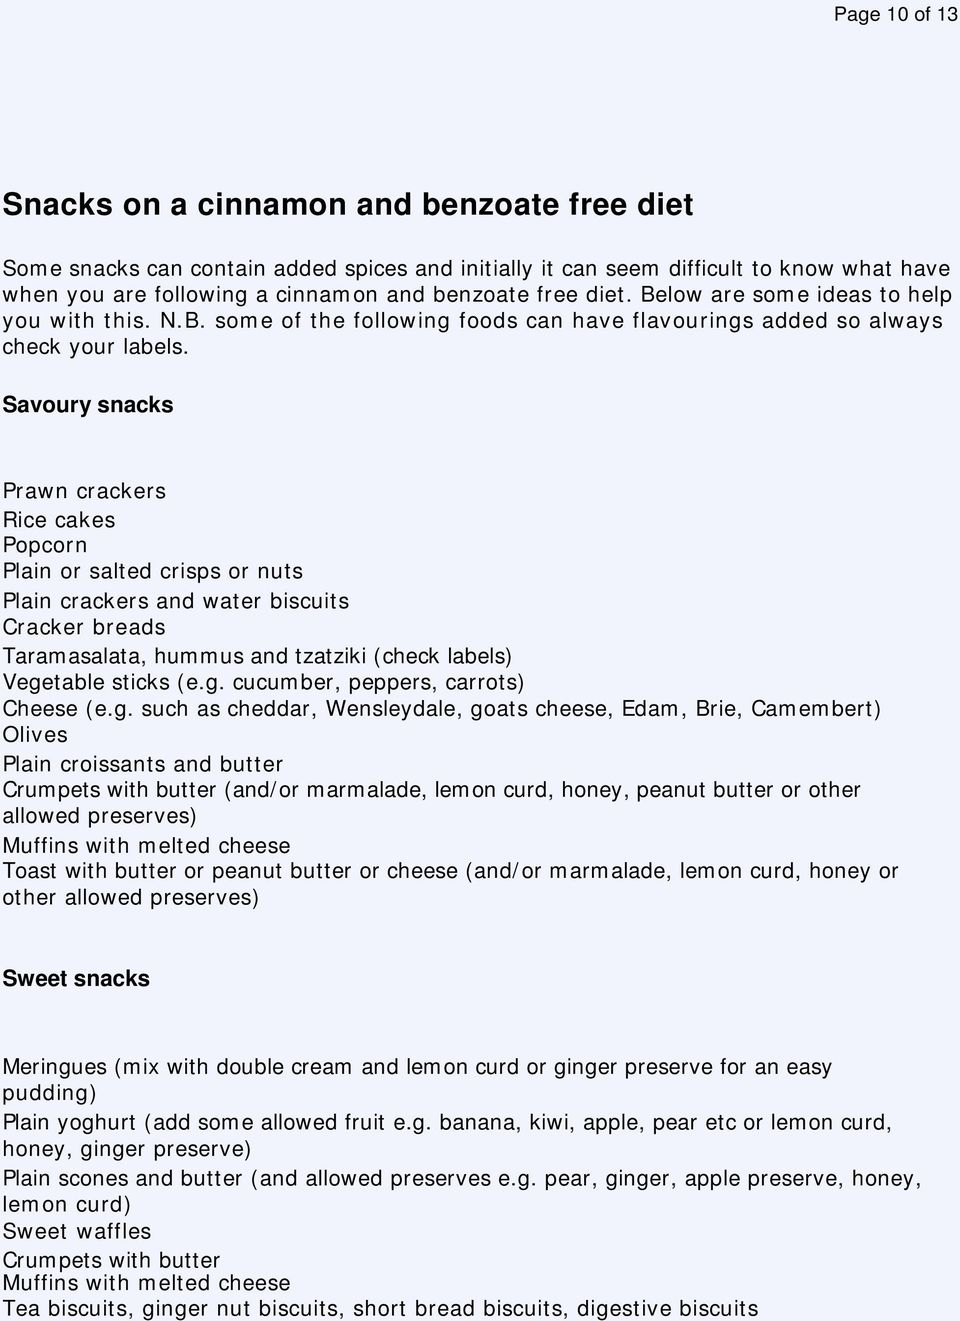 cinnamon and benzoate free diet